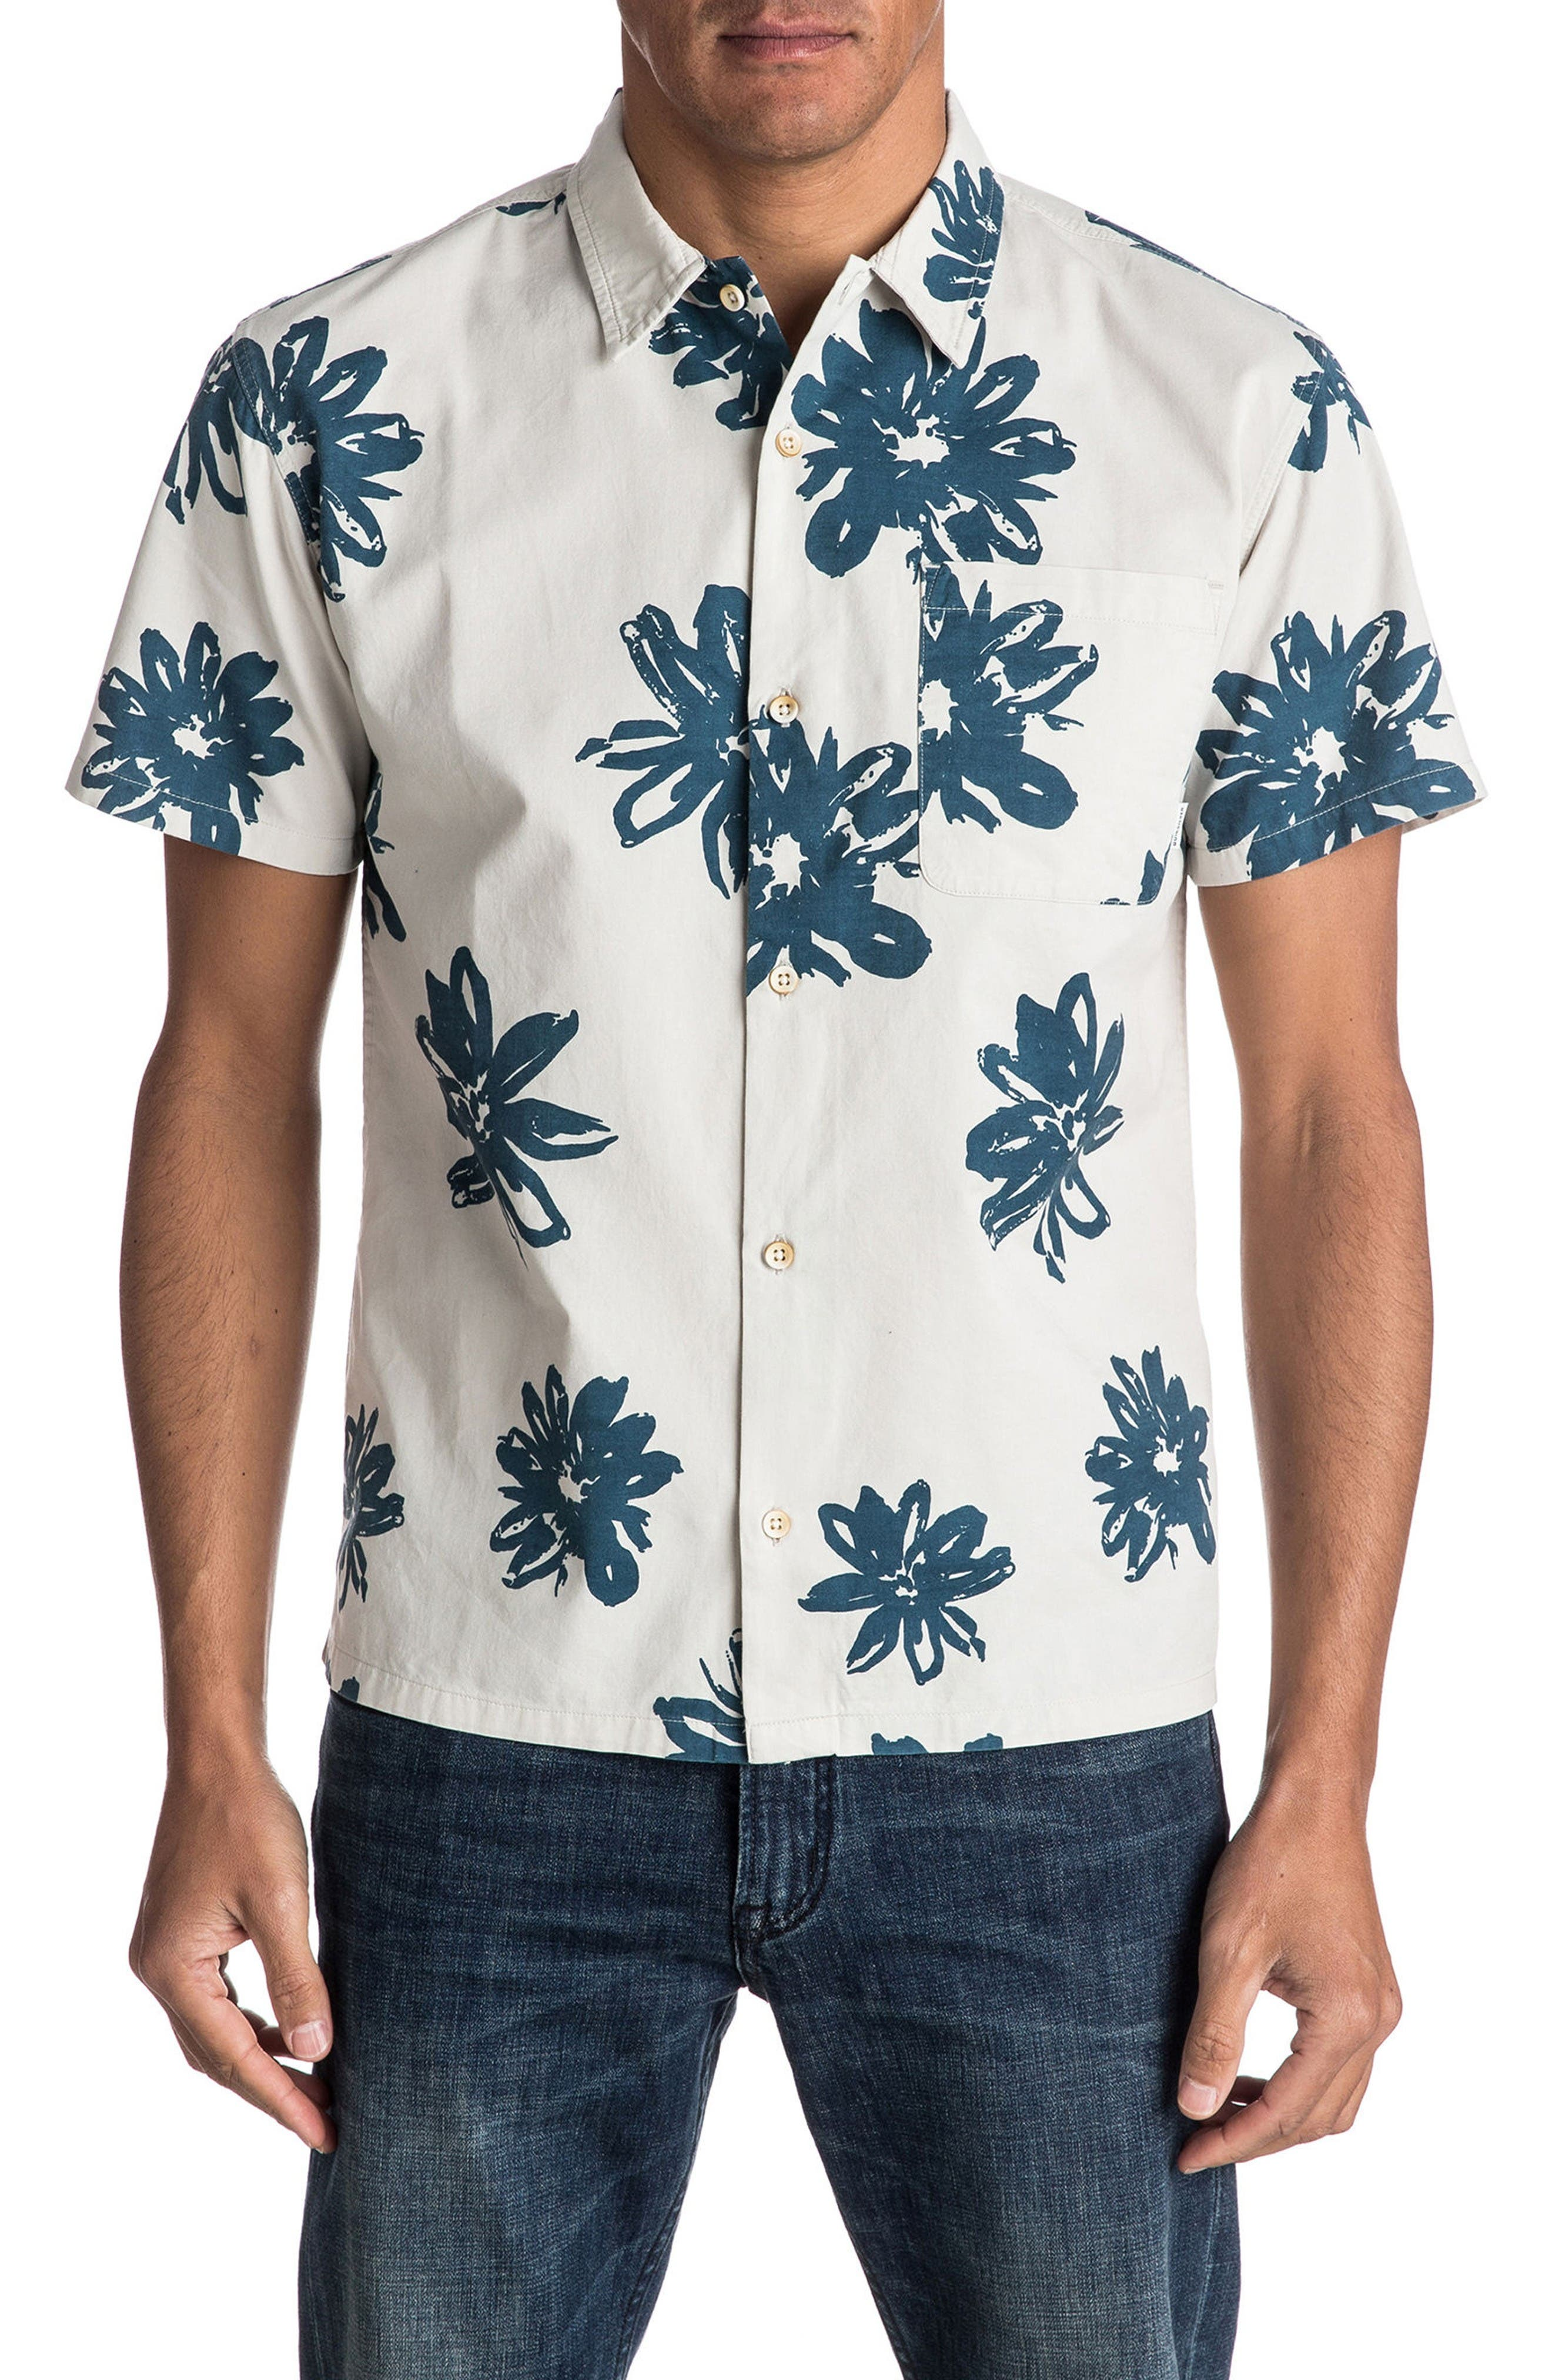 Quiksilver South Beach Dimes Woven Shirt